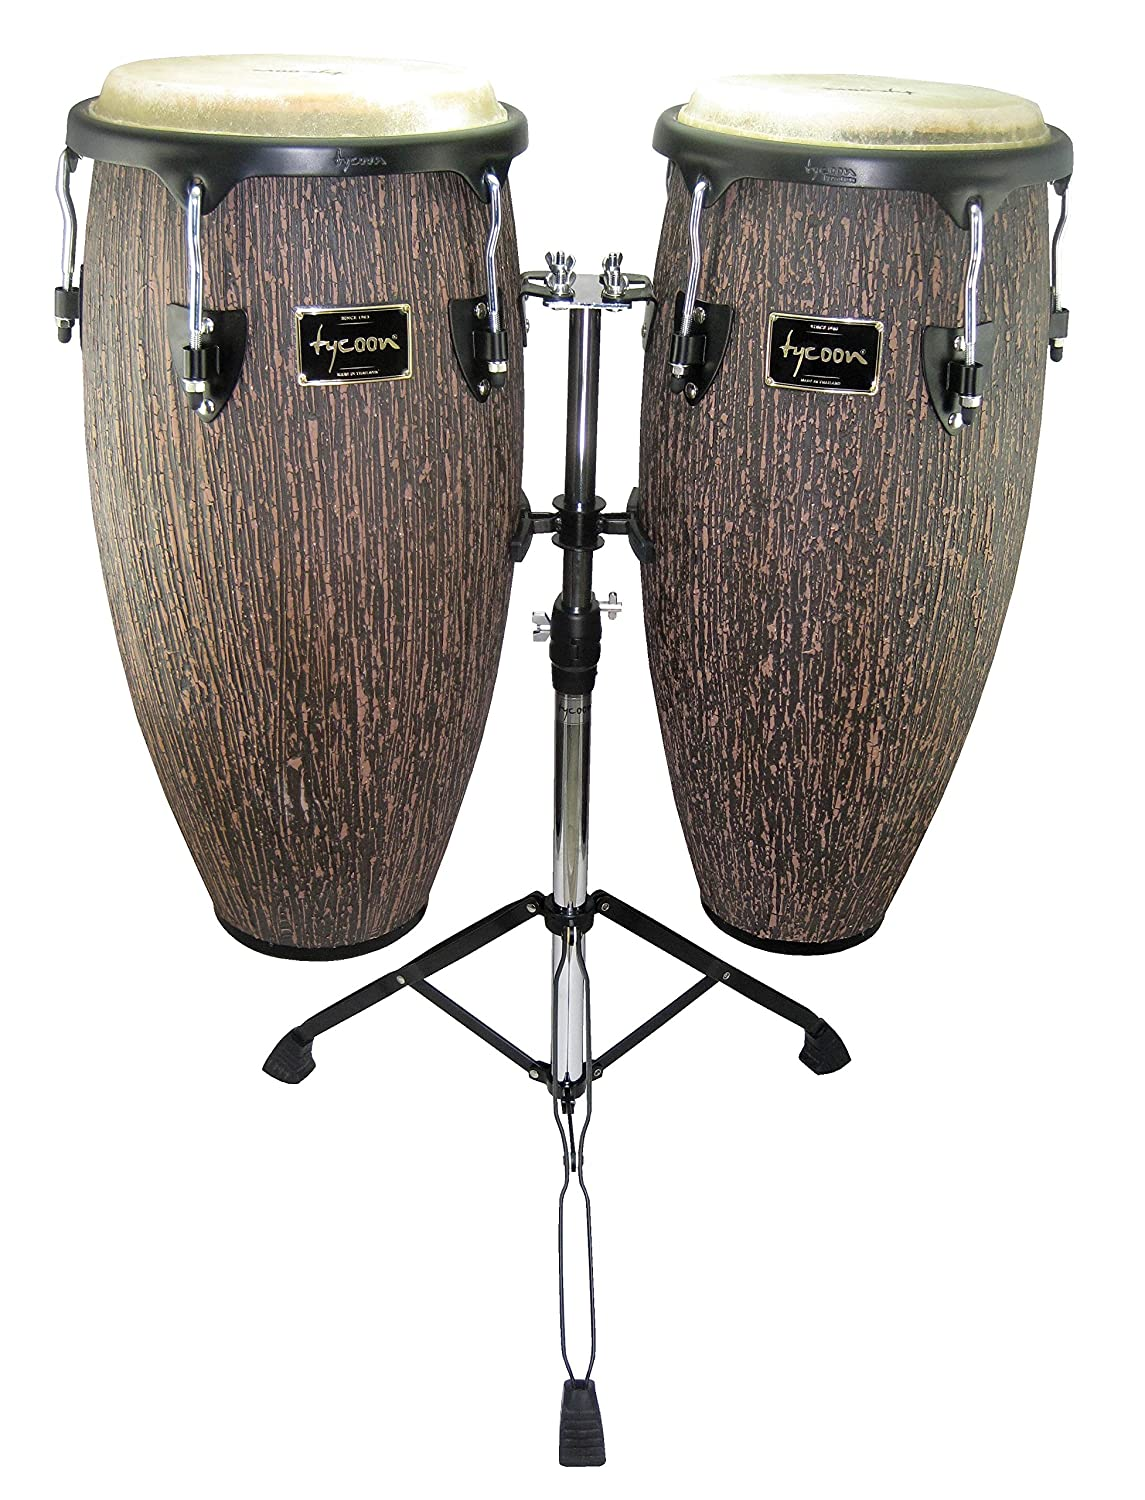 Tycoon Percussion SUPREMO Select Conga Set 10 and 11 in Lava Wood Finish with Double Stand BX1 (STCS-1BLW/D)